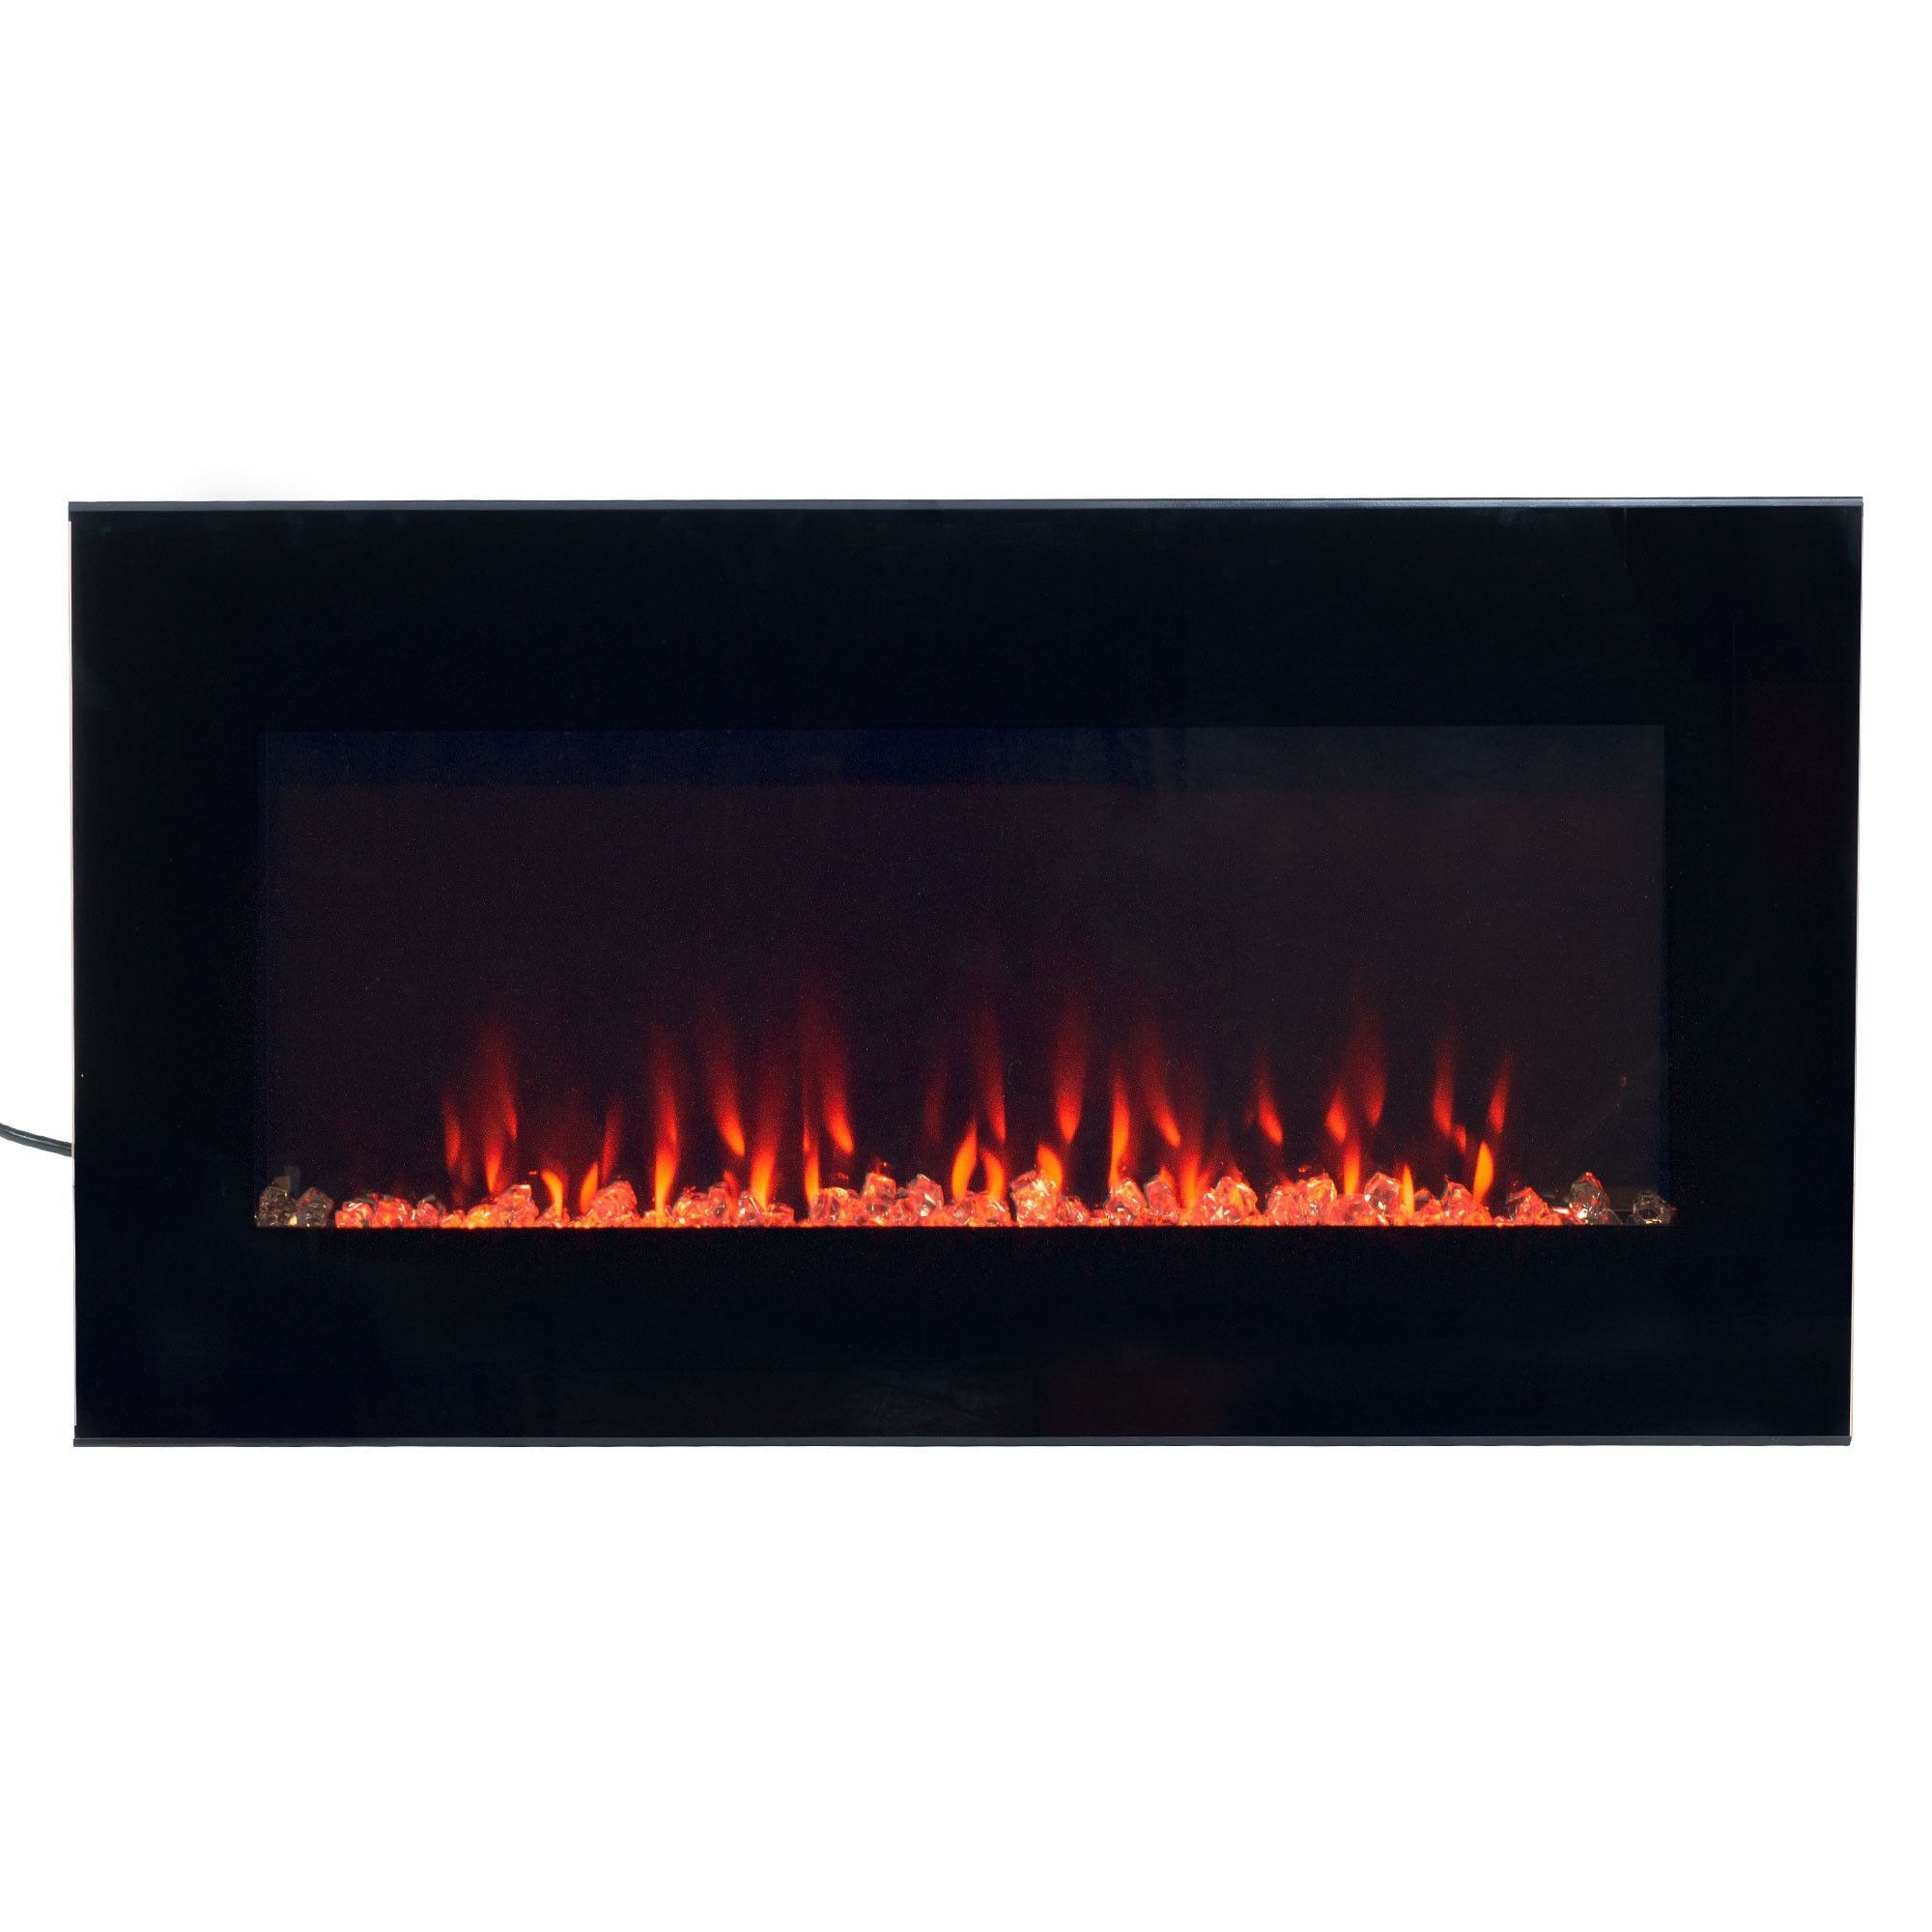 reviews guard bemodern photo wayfair of fireplace x amari electric wayfaircouk night